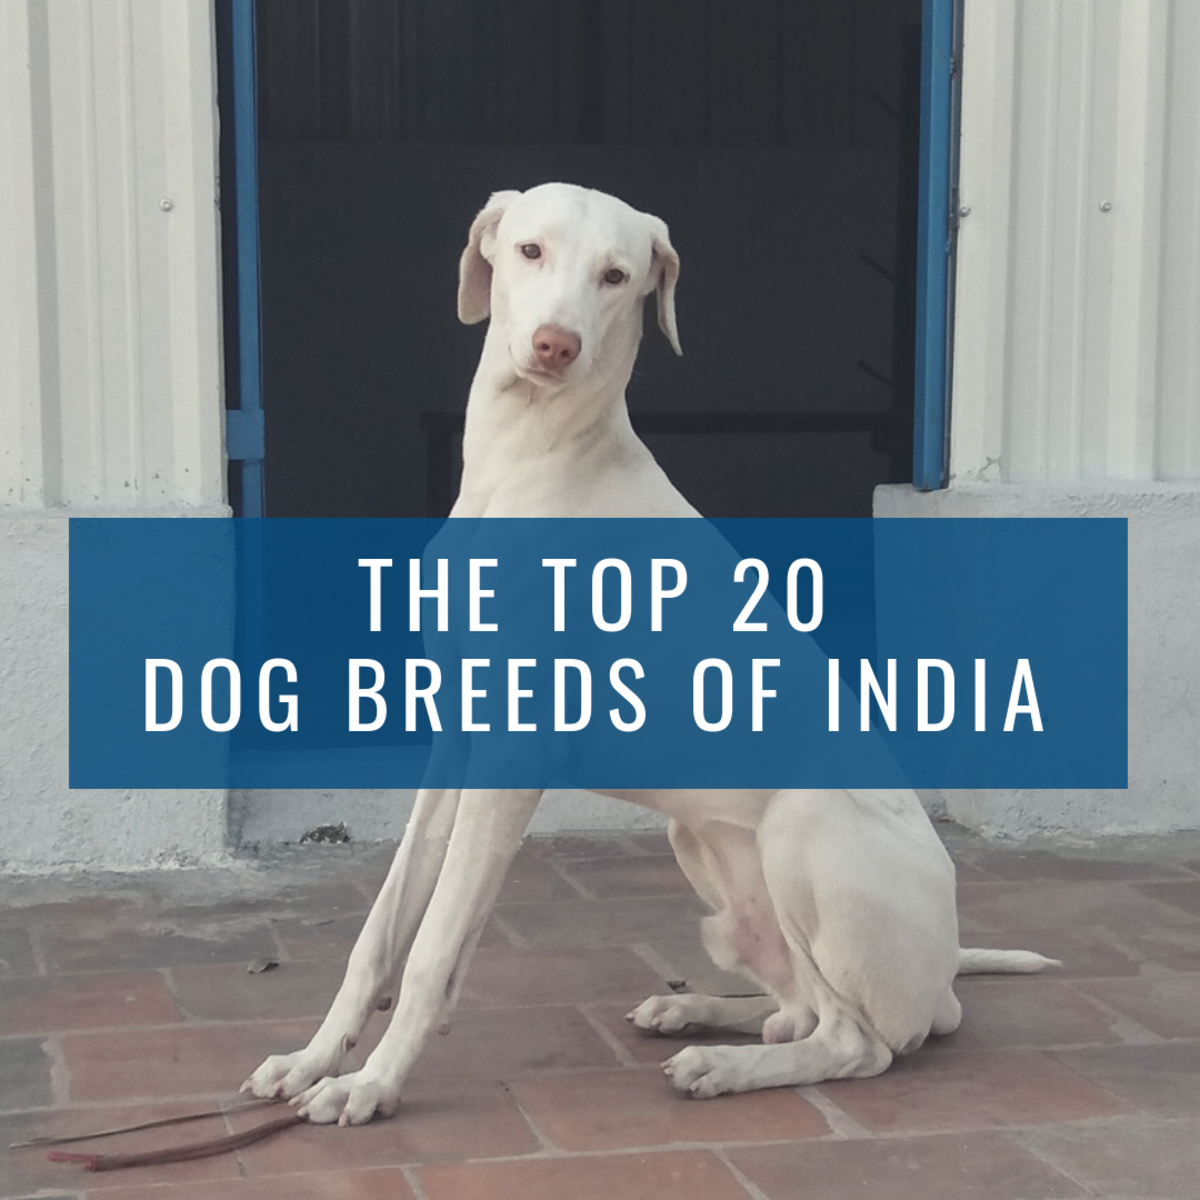 A summary of popular Indian dog breeds, breed traits, and pricing.